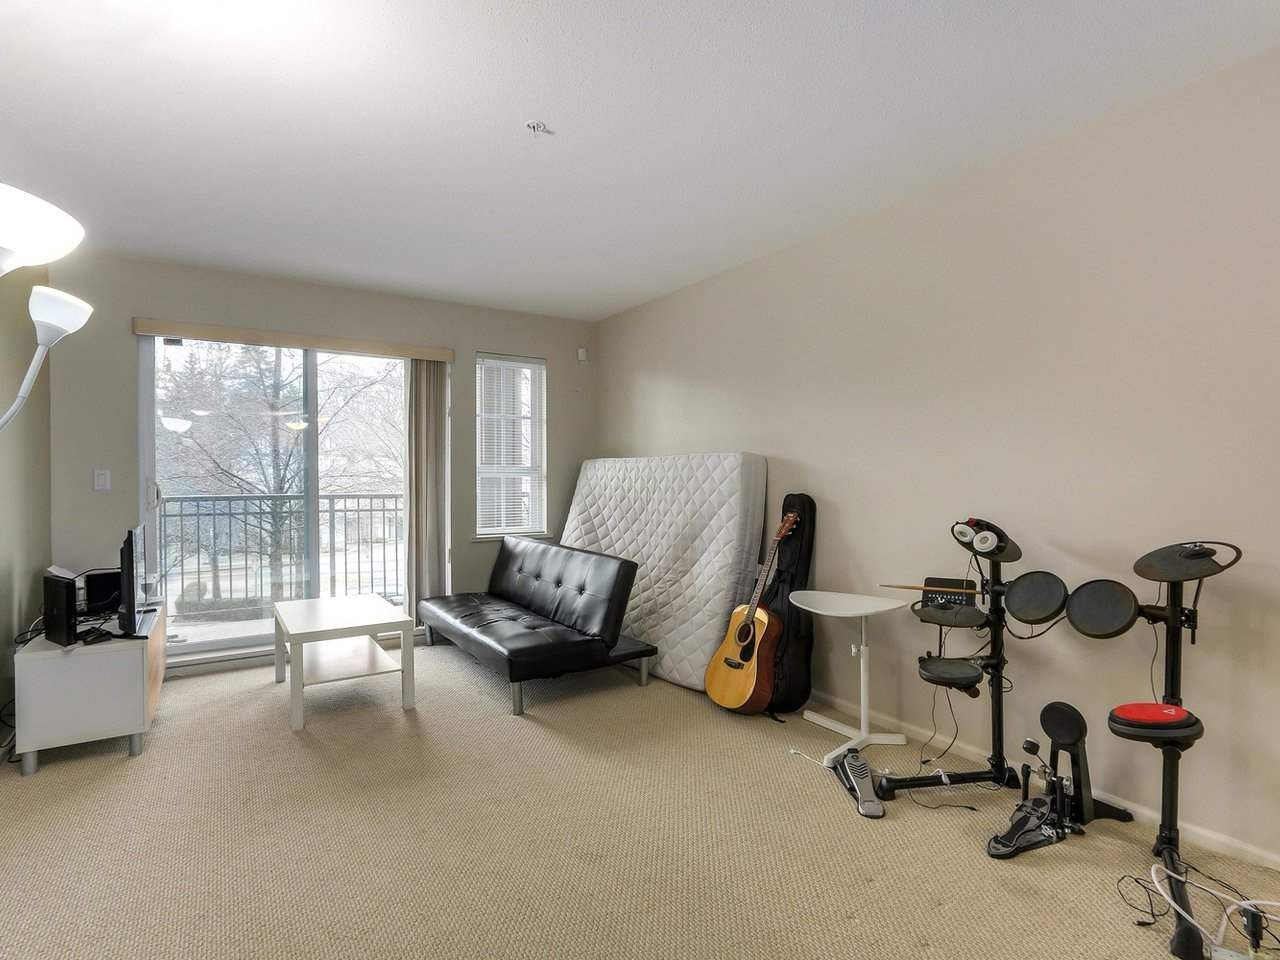 Photo 6: Photos: 205 3388 MORREY Court in Burnaby: Sullivan Heights Condo for sale (Burnaby North)  : MLS®# R2326824